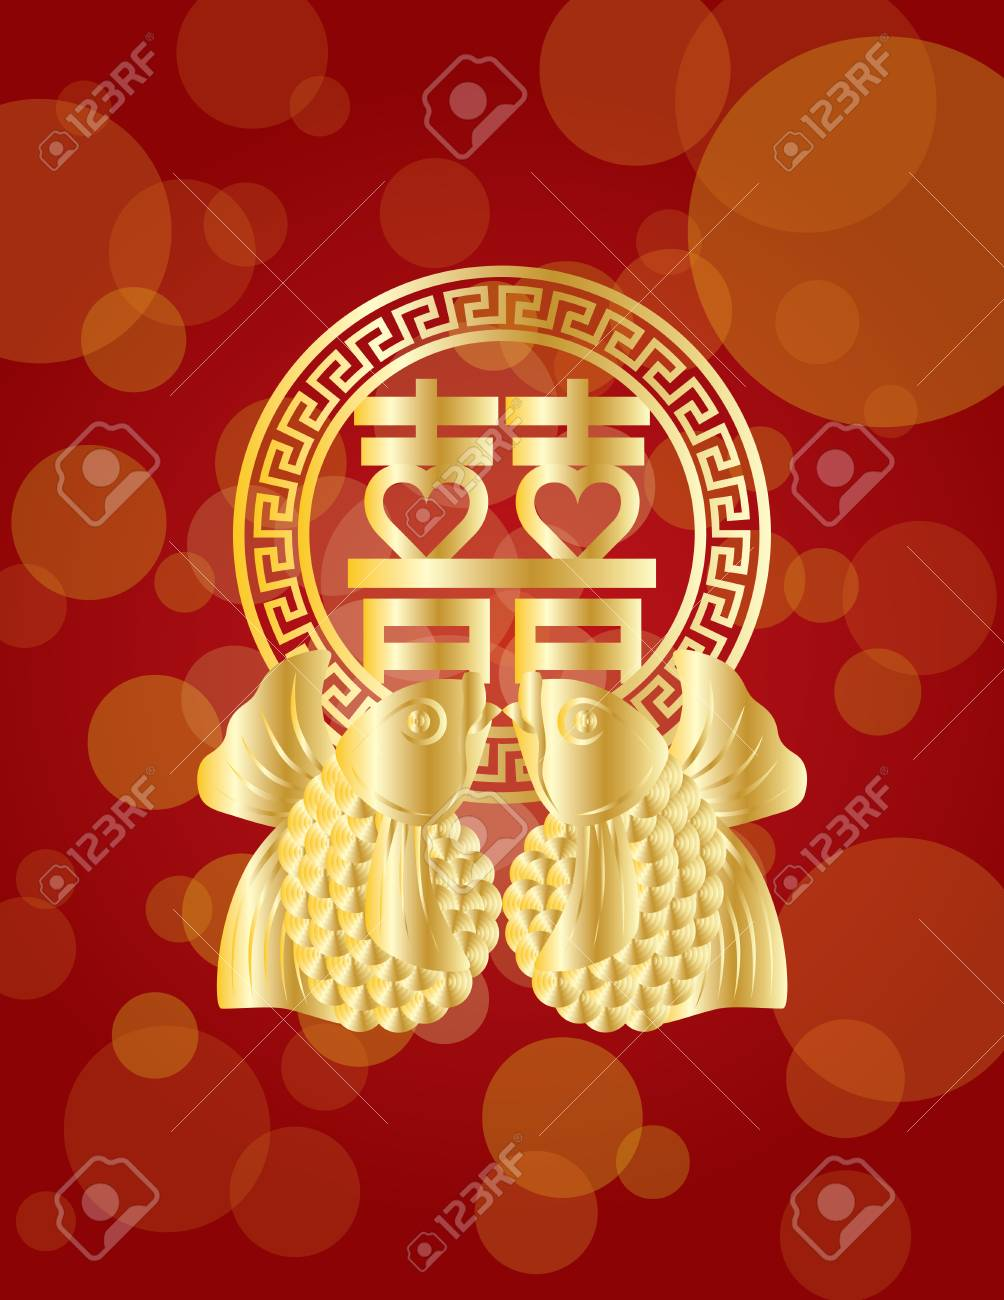 Double happiness gold koi fish chinese wedding symbol text on double happiness gold koi fish chinese wedding symbol text on red background illustration stock vector buycottarizona Gallery